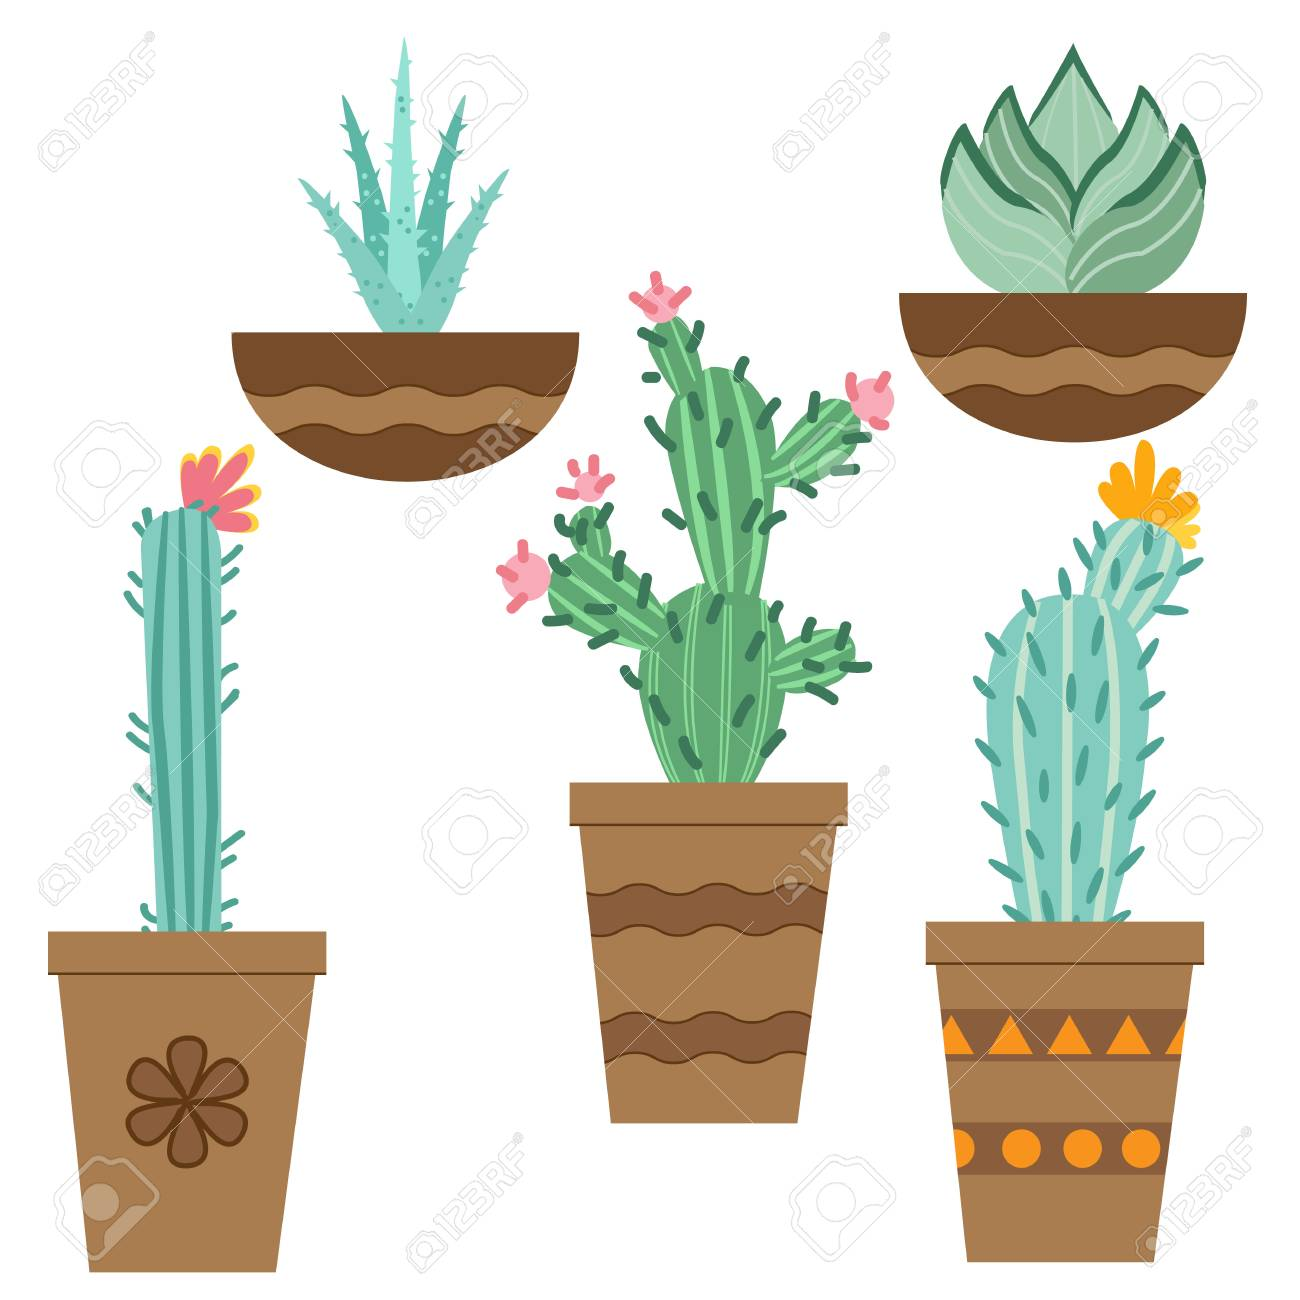 Cactus Flower In Pots For Flowers And Plants Bright Cacti Aloe